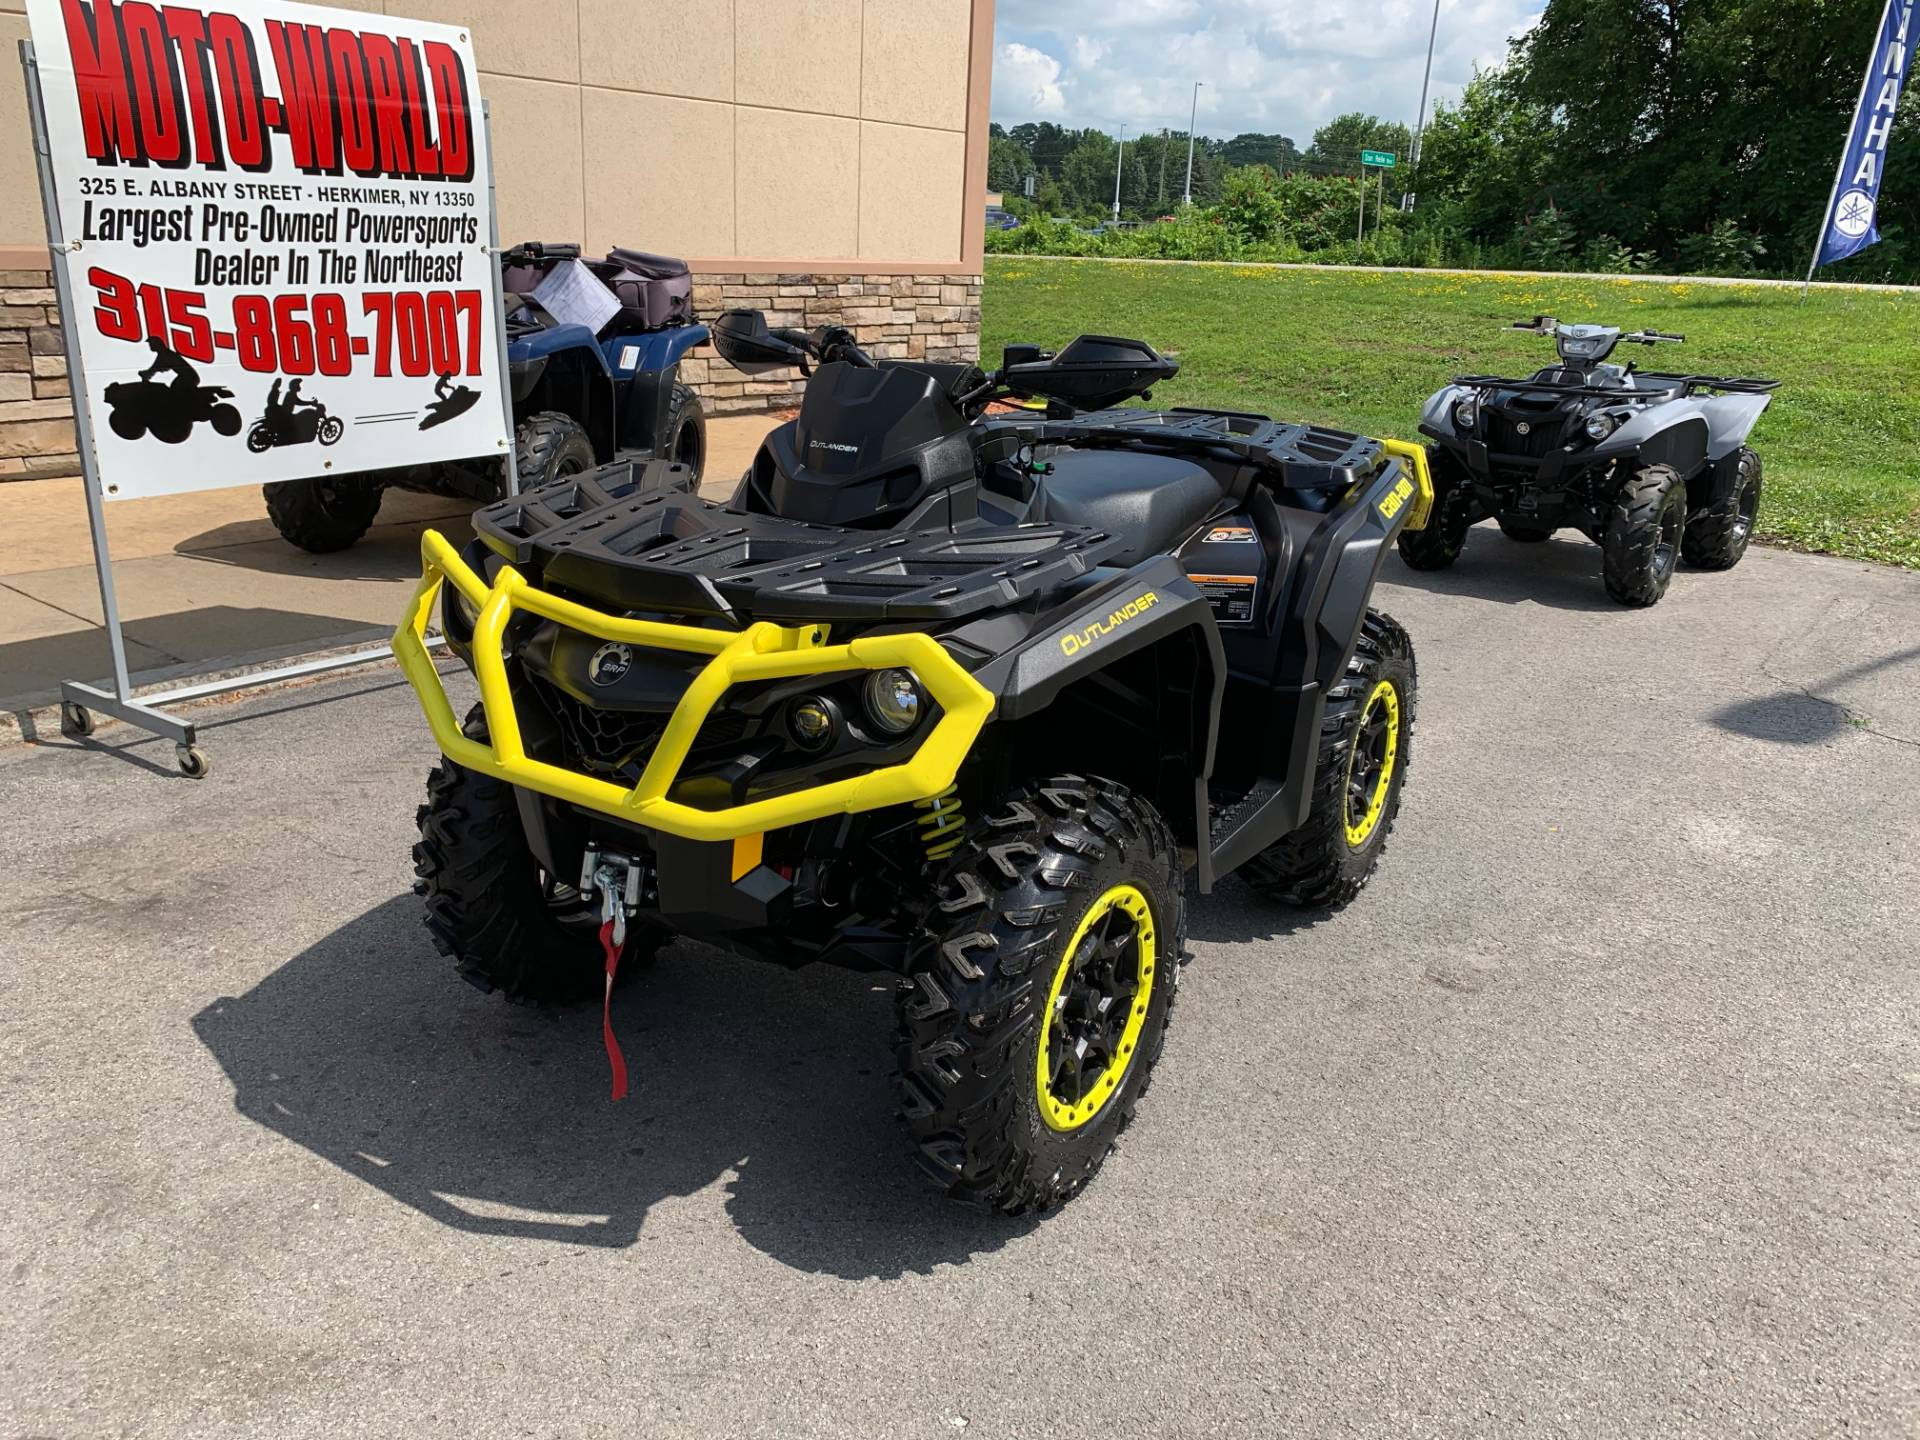 2019 Can-Am Outlander XT-P 850 in Herkimer, New York - Photo 12